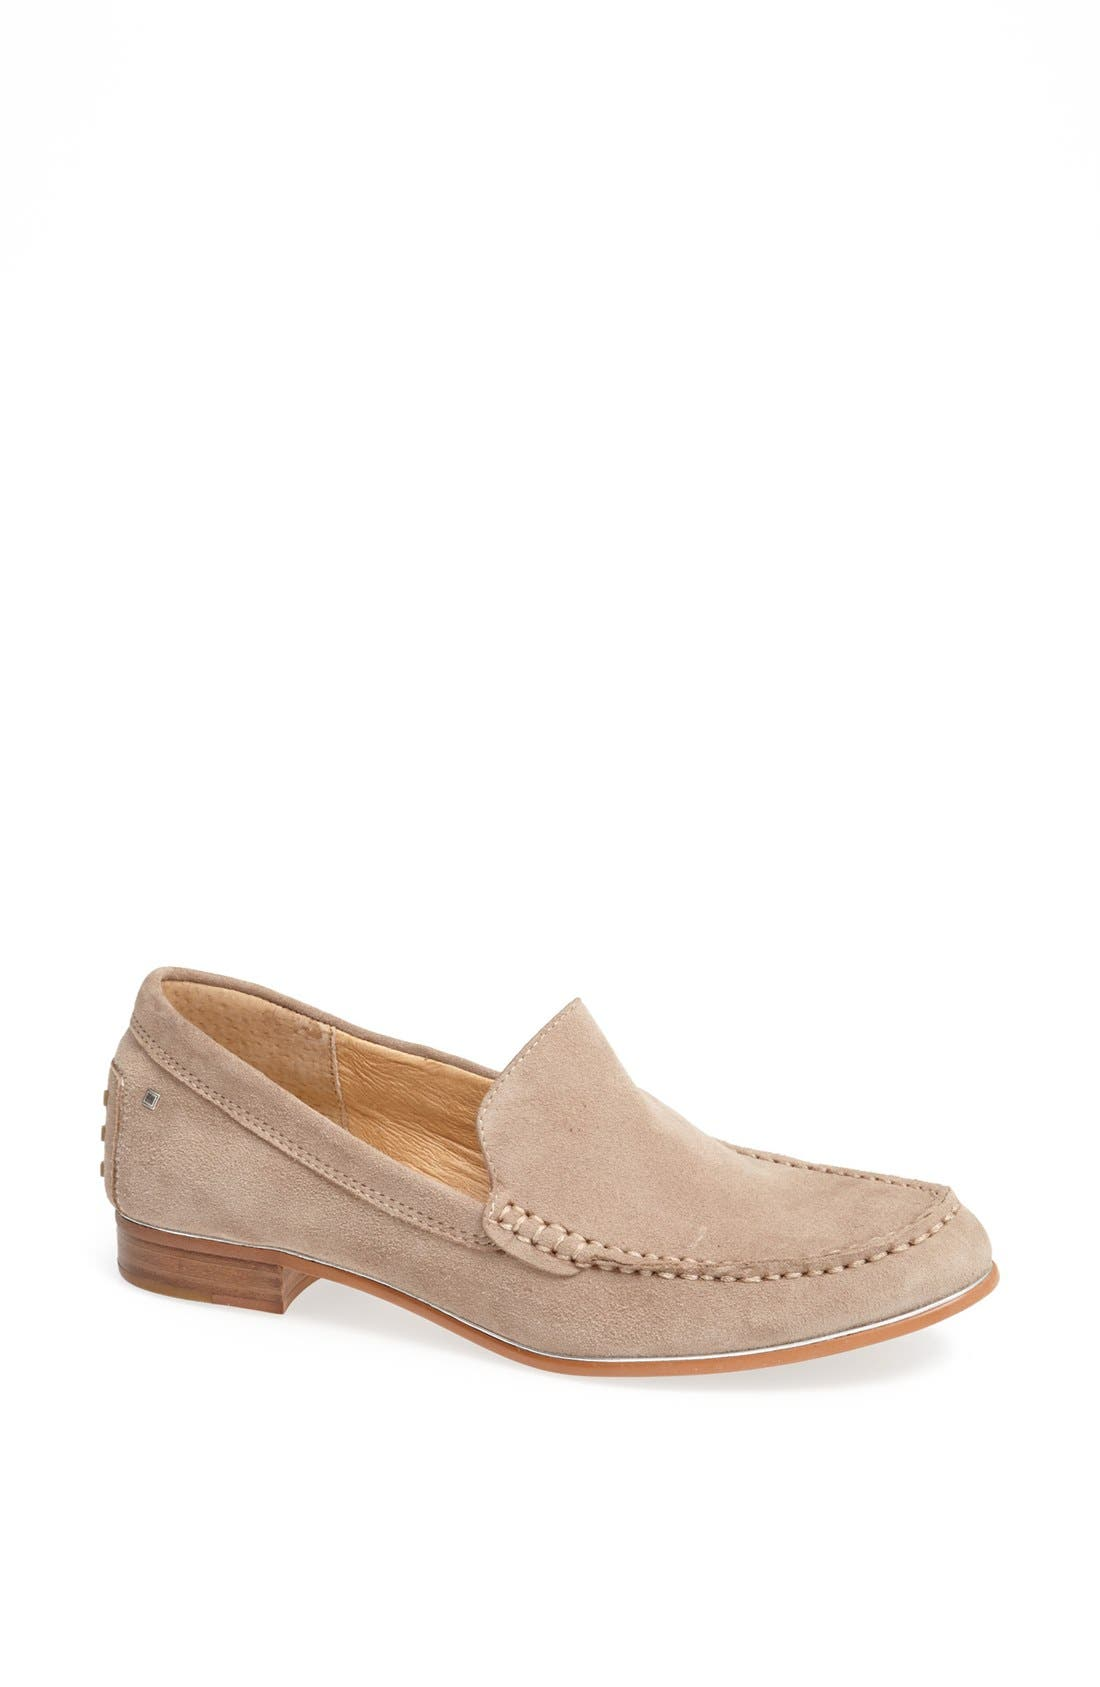 Main Image - Dolce Vita 'Venka' Leather Flat